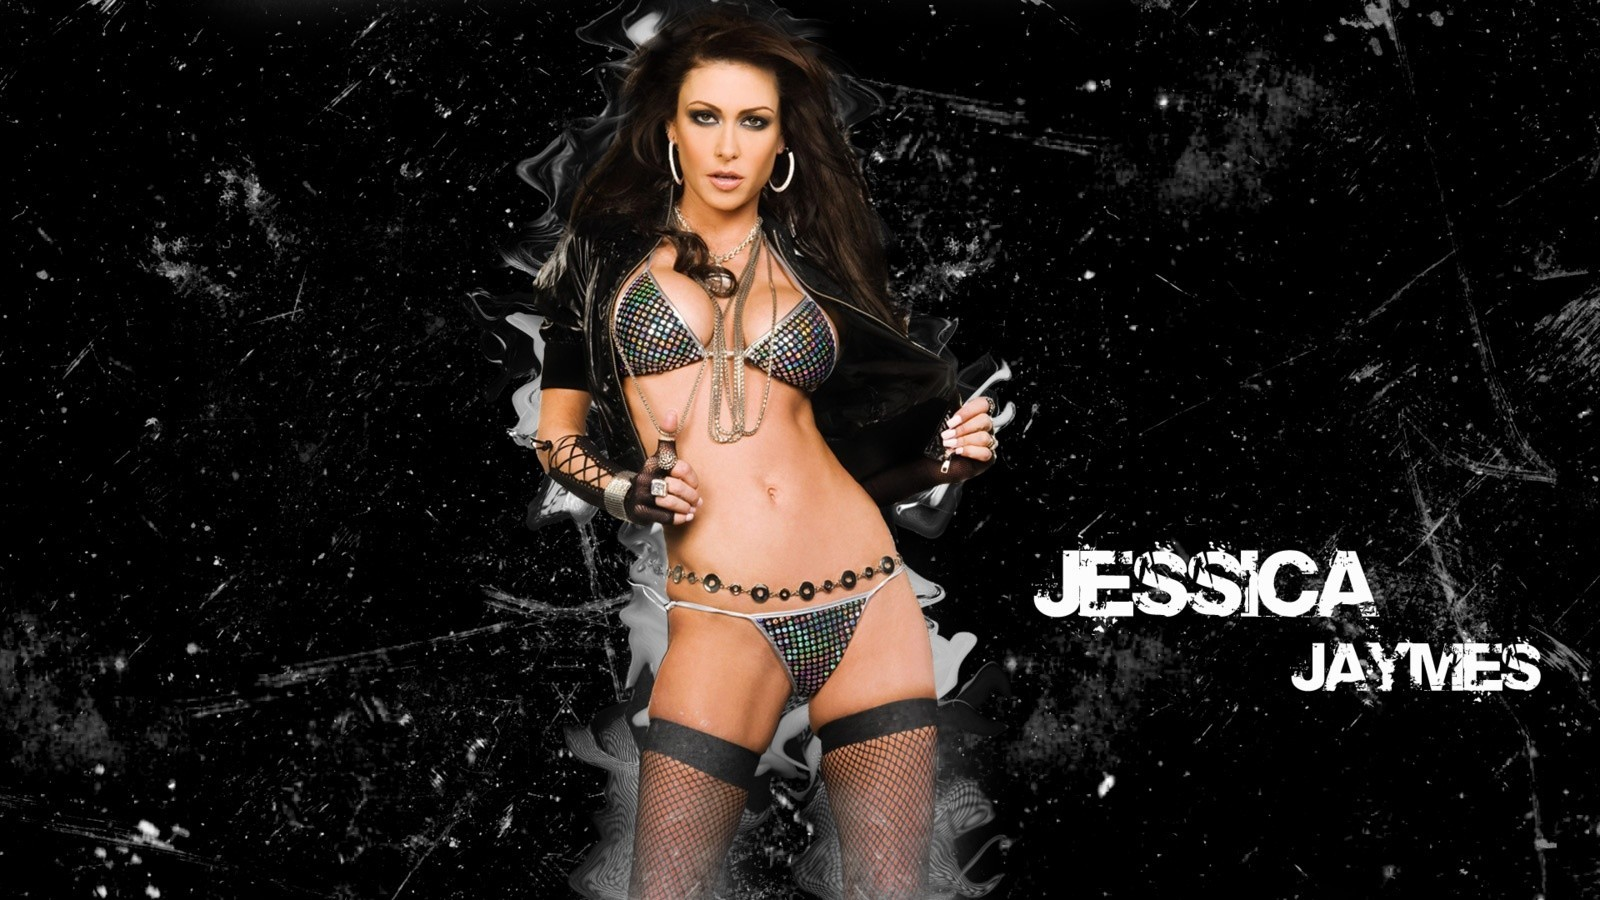 stockings Jessica Jaymes fishnet HD Wallpaper